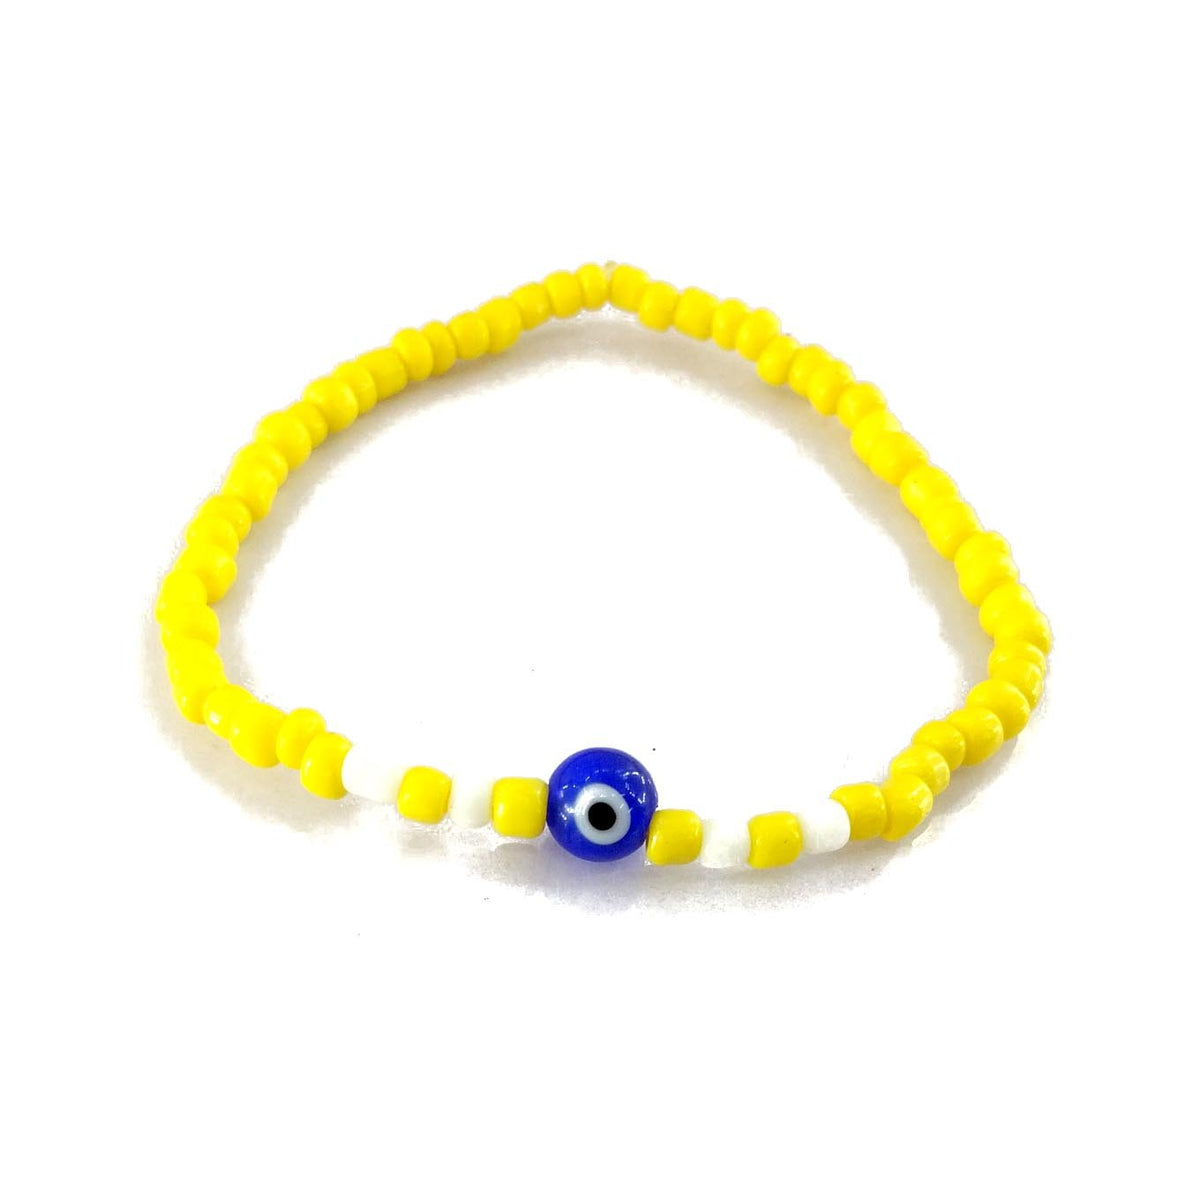 Blue Evil Eye Accessories Yellow & White Beads Bracelet, Bracelets - JewelHub jewelry